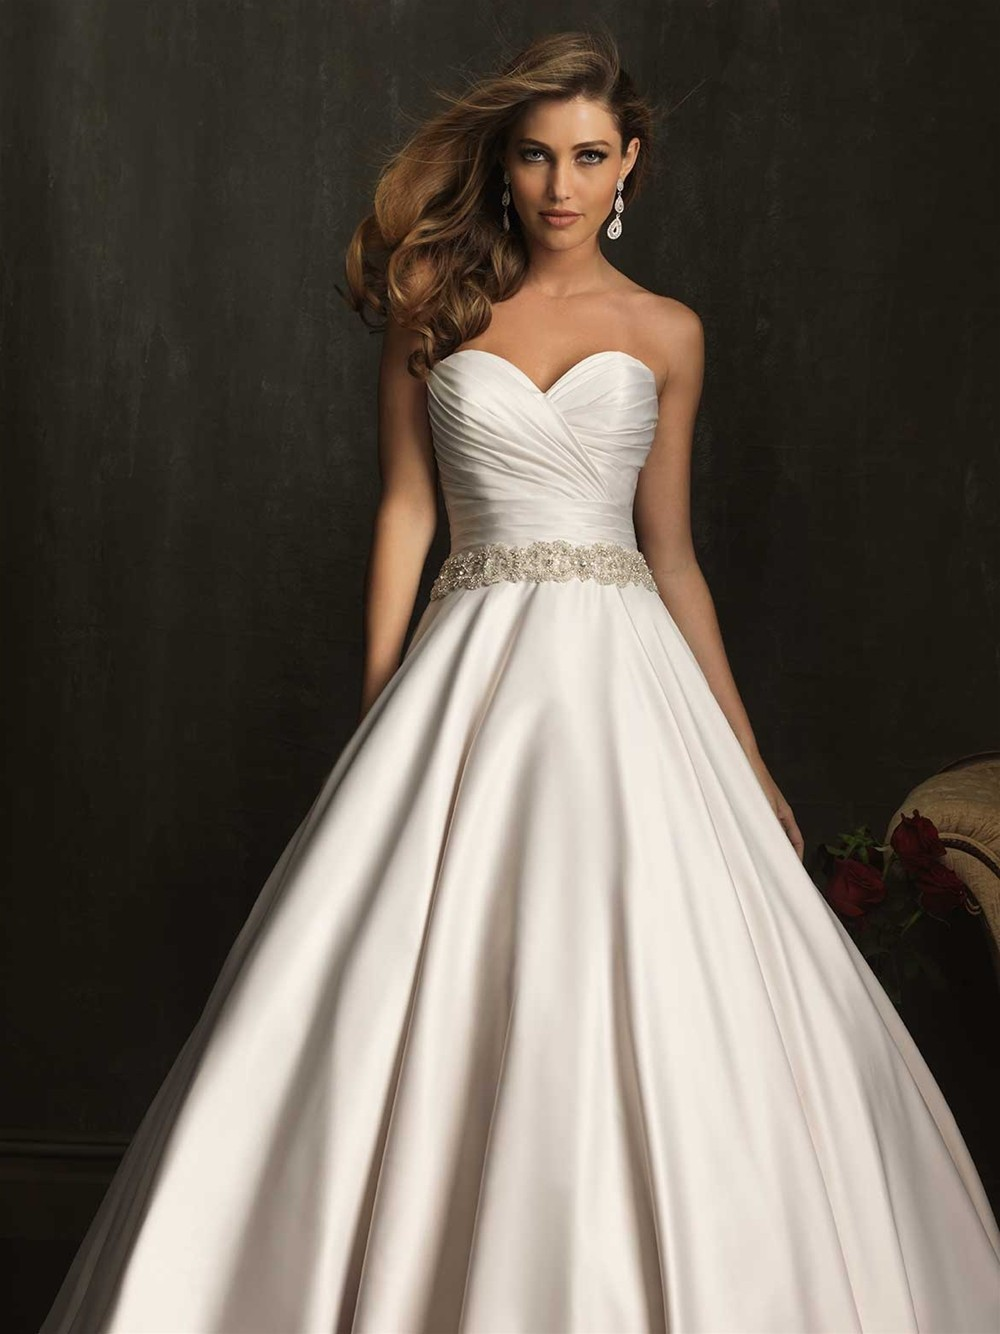 Allure Bridals 9065 Strapless Sweetheart Satin Ball Gown Wedding Dress    Crazy Sale Bridal Dresses|Special Wedding ...